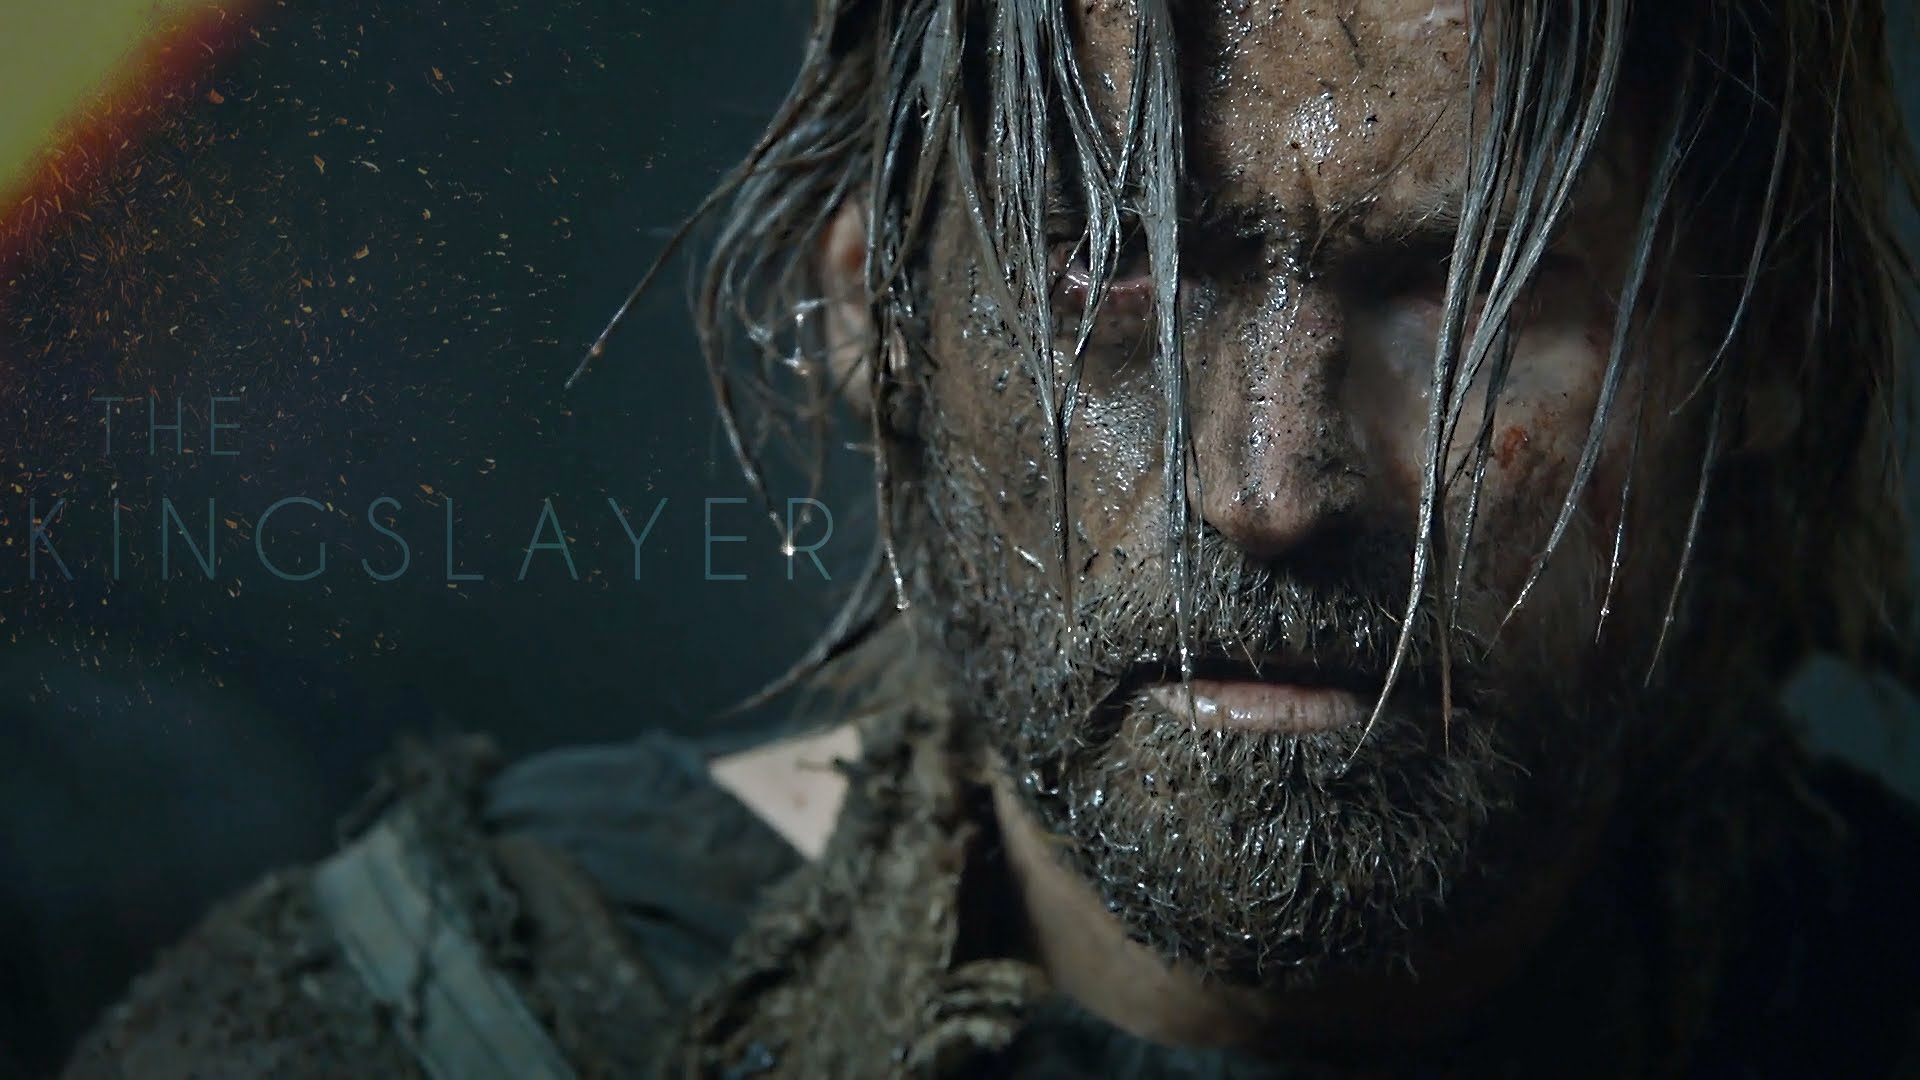 The Kingslayer, A Supercut Tribute to Jaime Lannister's Difficult Journey on Game of Thrones